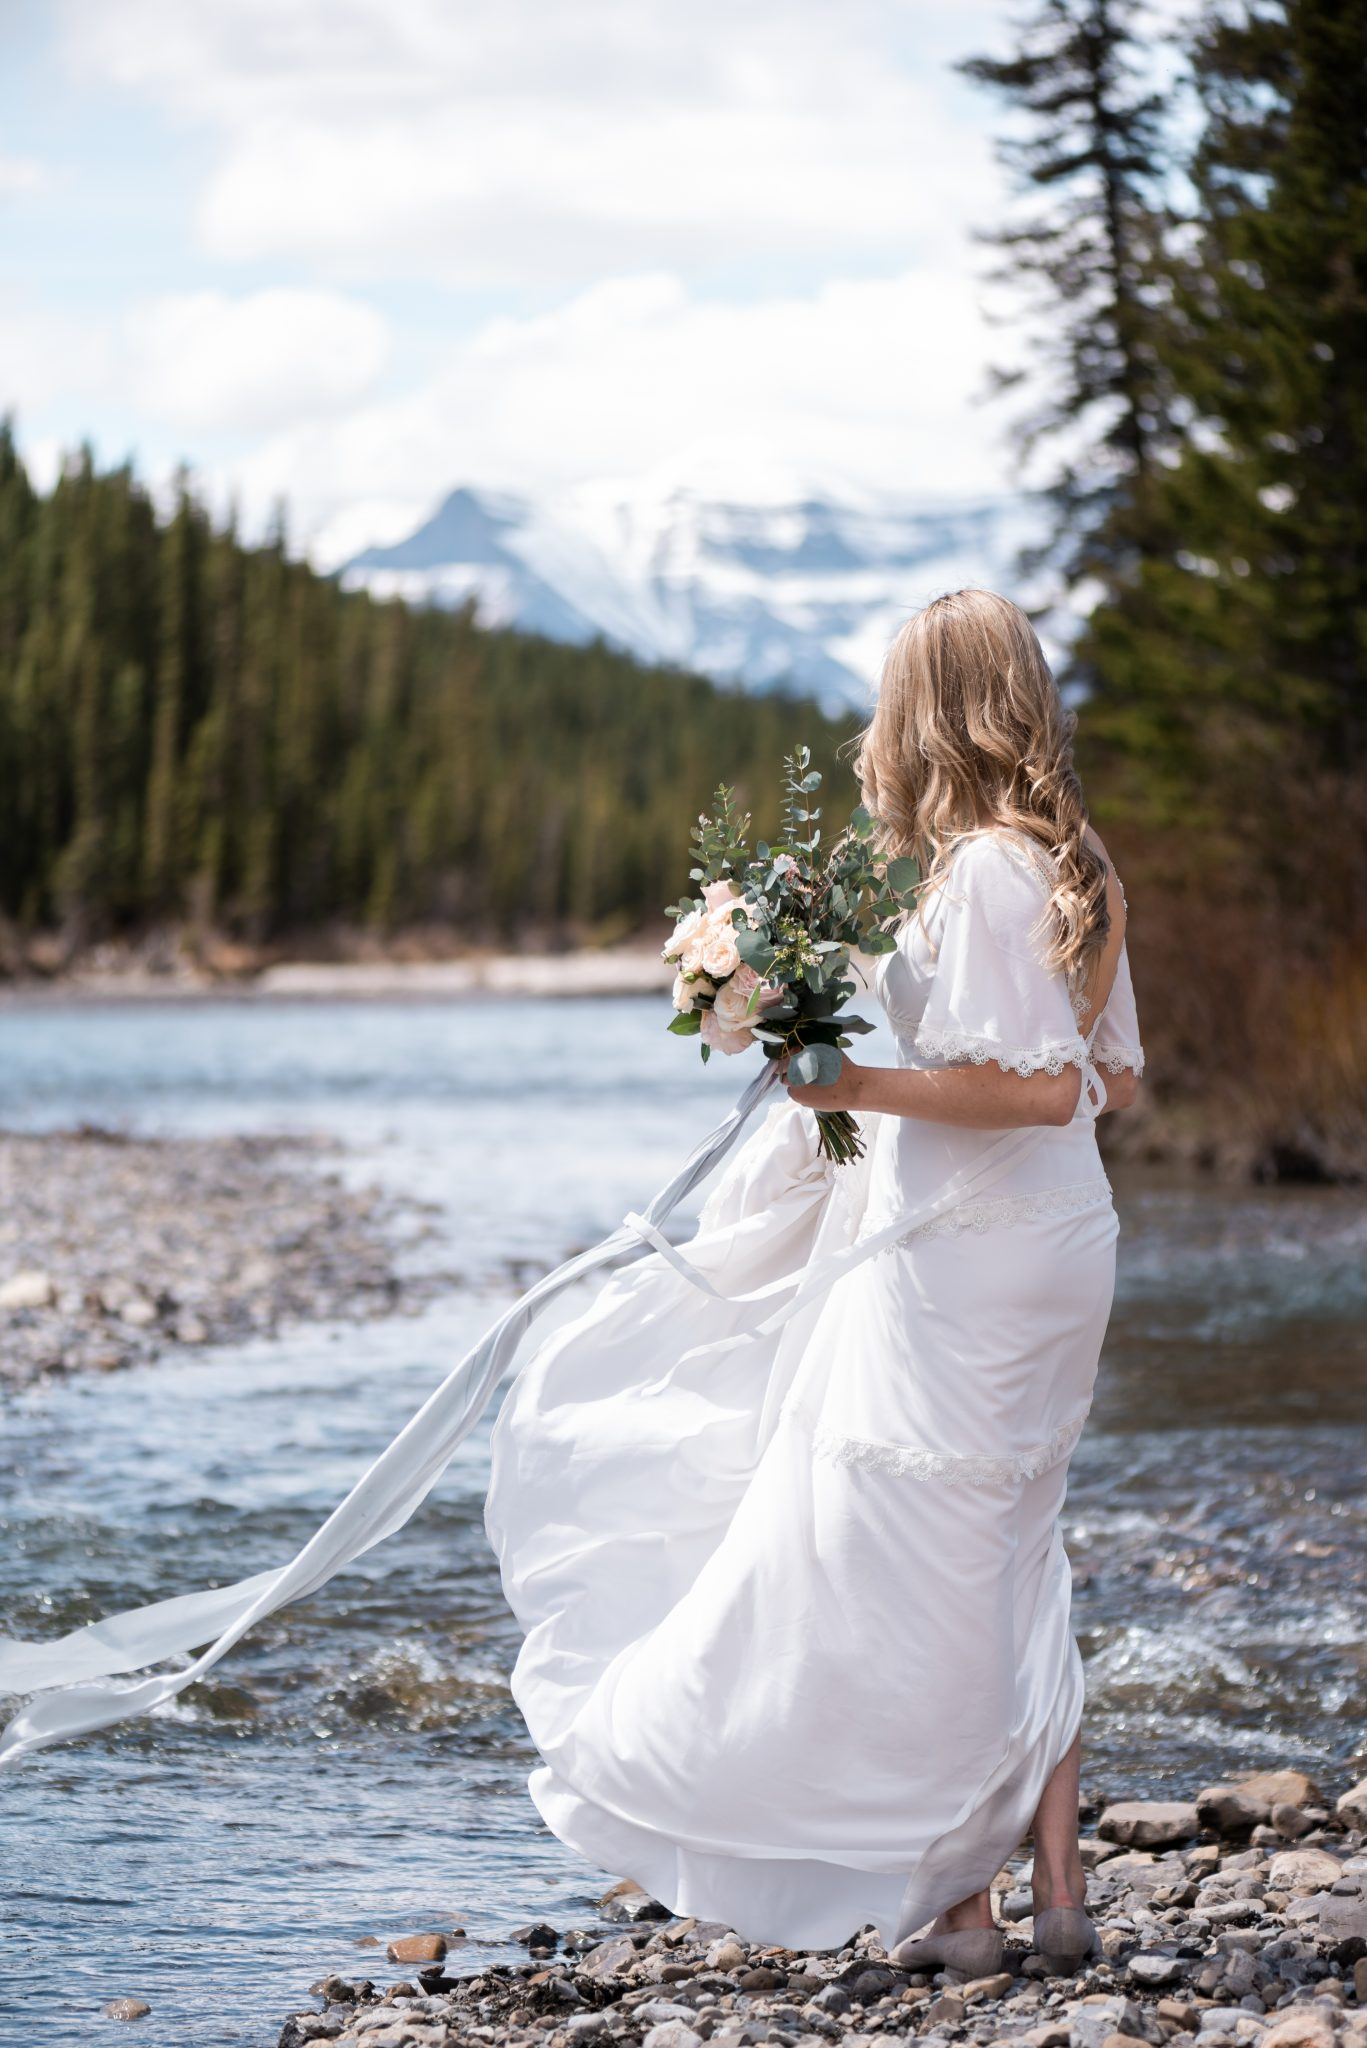 Western boho elopement inspiration in the Canadian Rocky Mountains